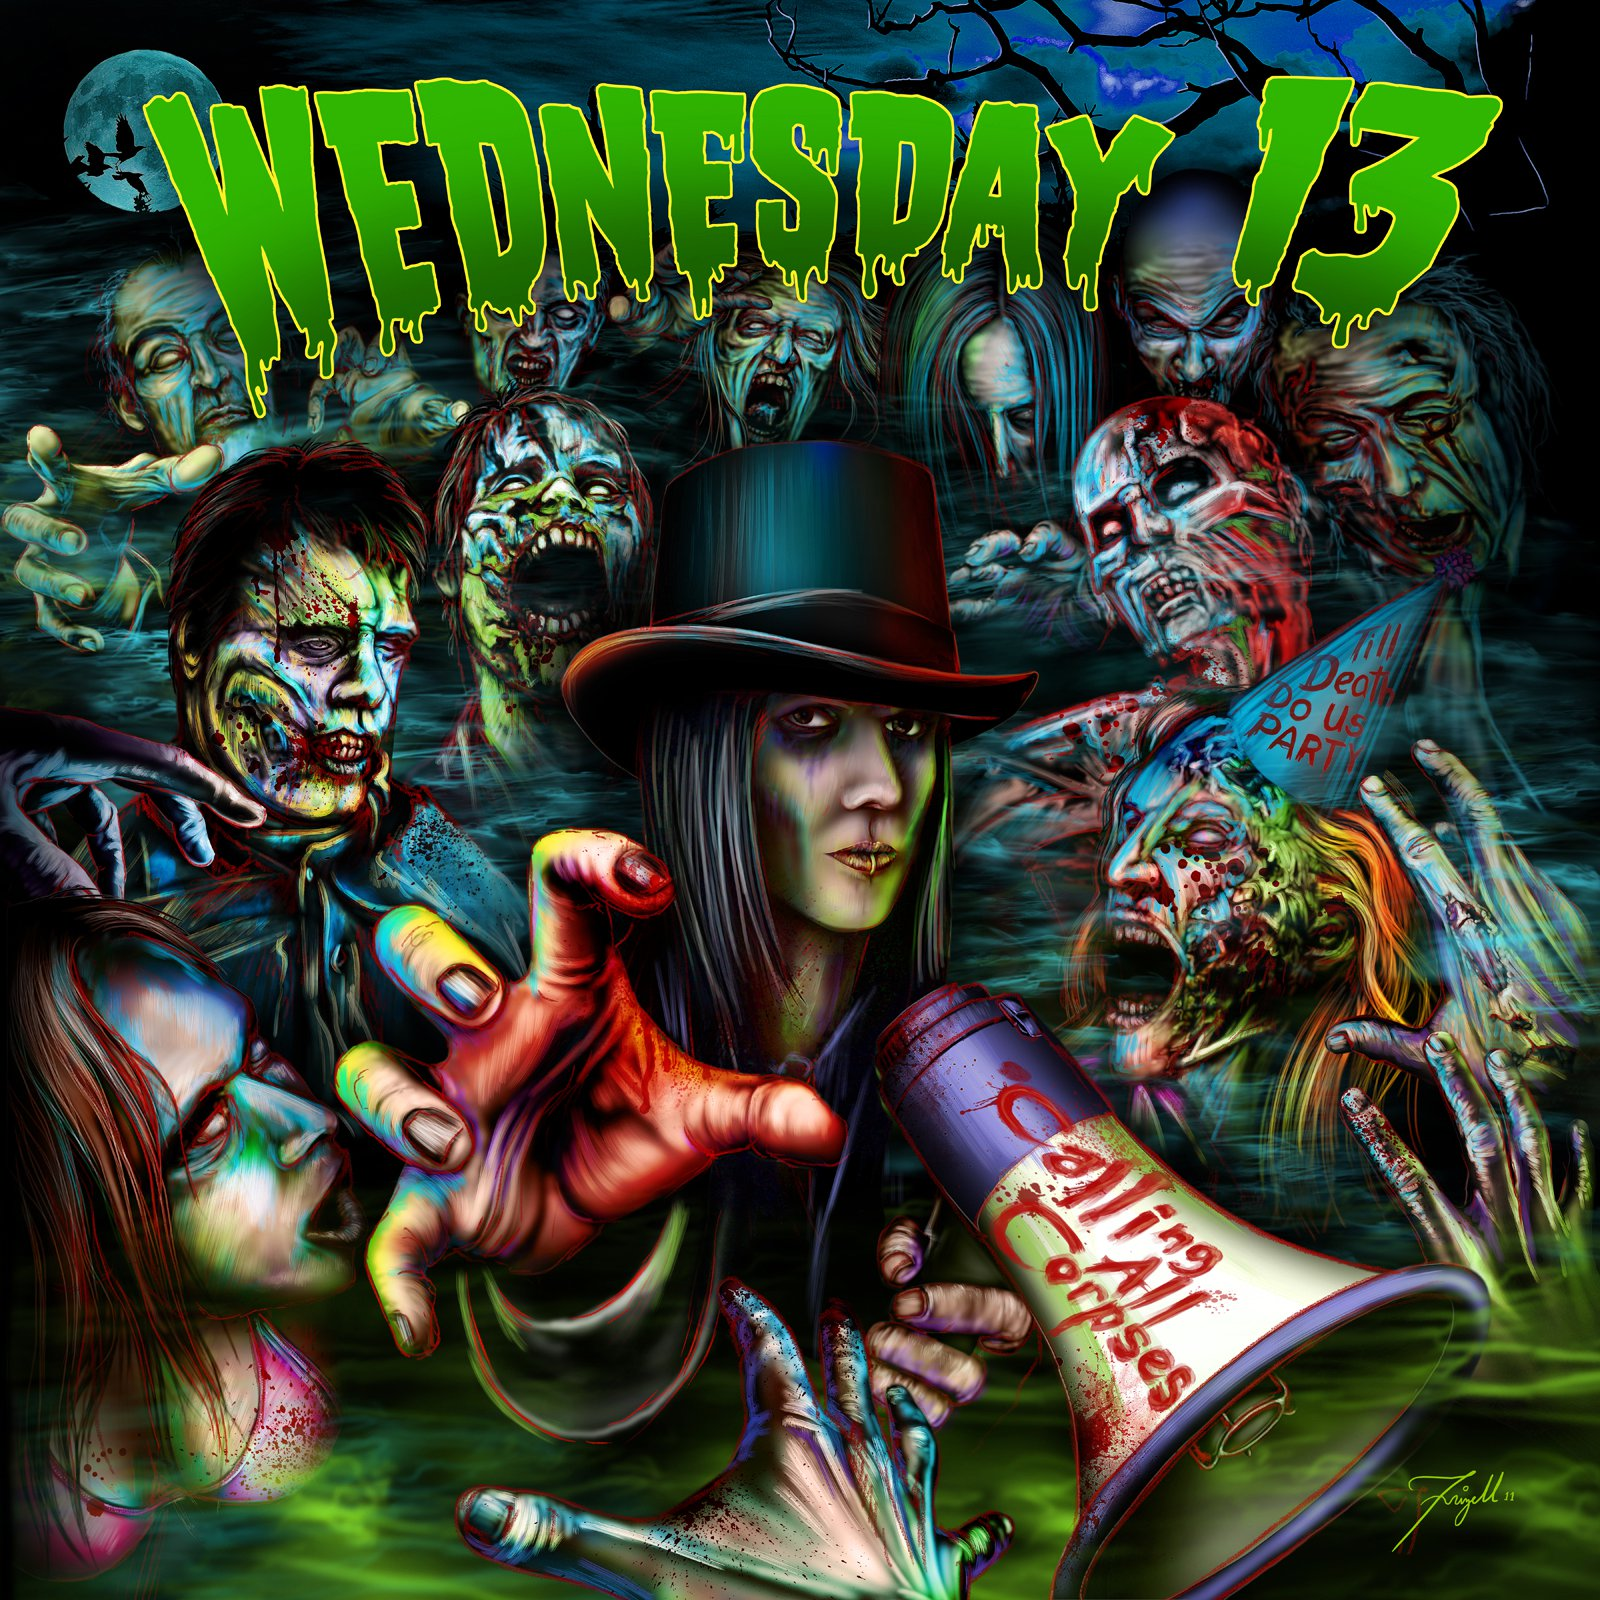 Wednesday 13 – Calling All Corpses